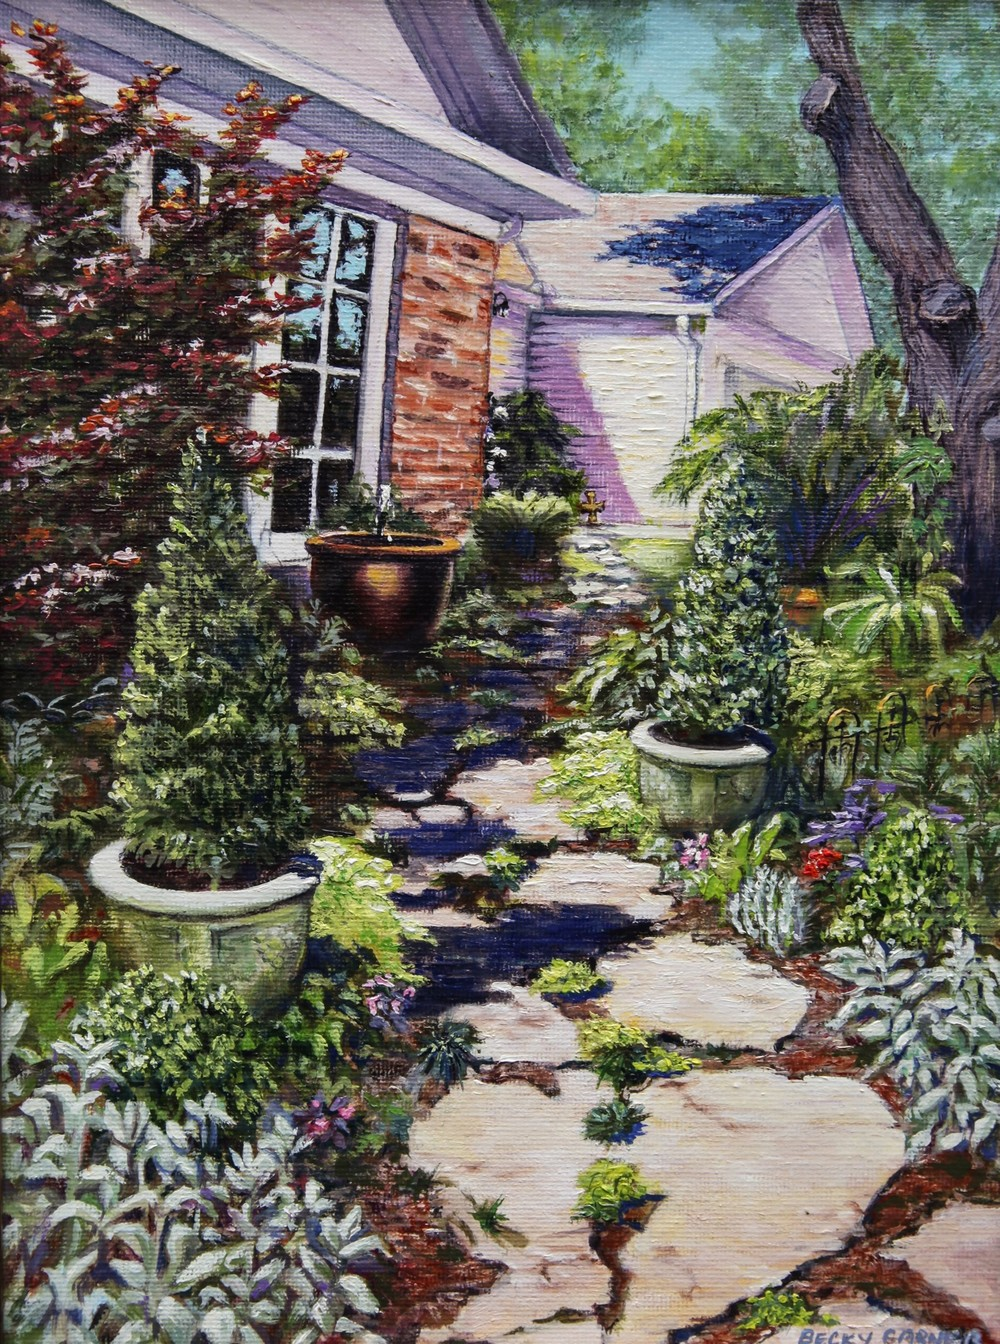 """Welcoming Garden"" by Becky Garner"